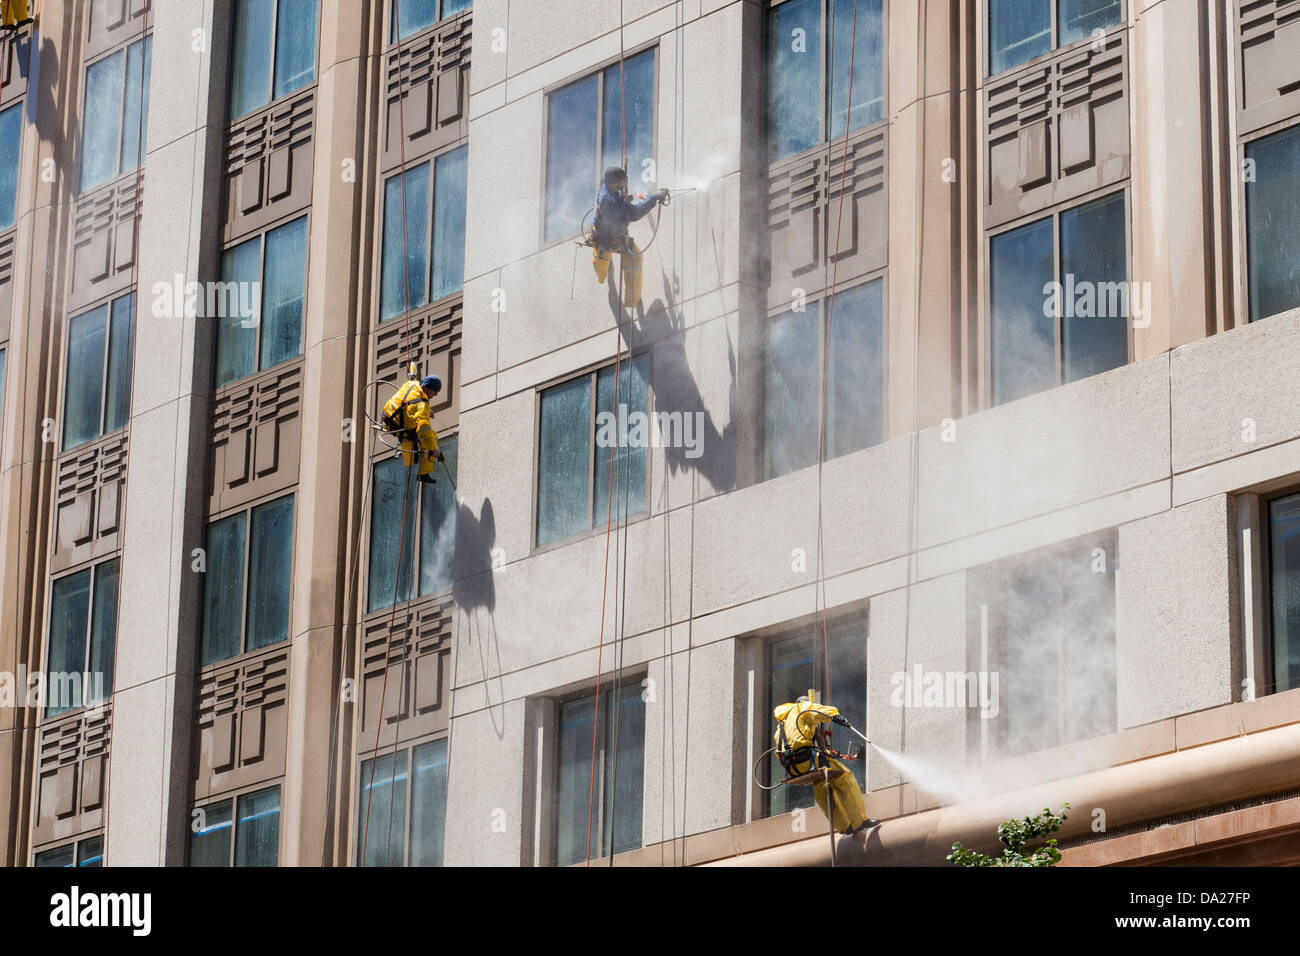 High rise building maintenance crew cleaning with pressure washer - Stock Image